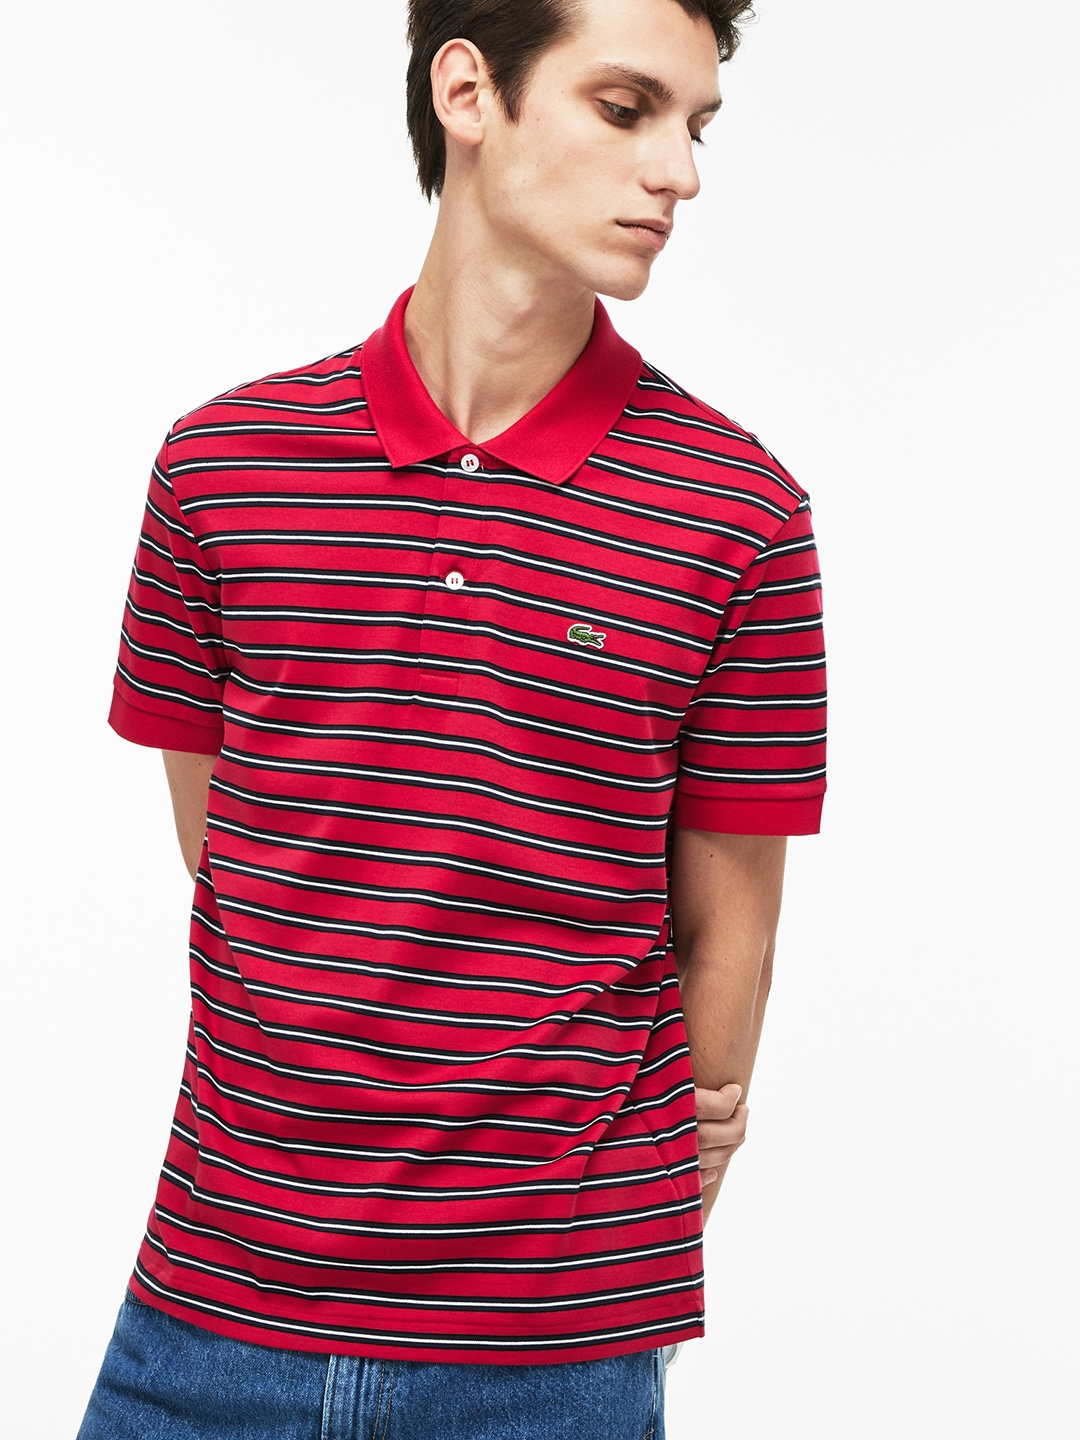 9fbab6a6 Buy Lacoste Men Red Striped Polo Collar T Shirt - Tshirts for Men ...